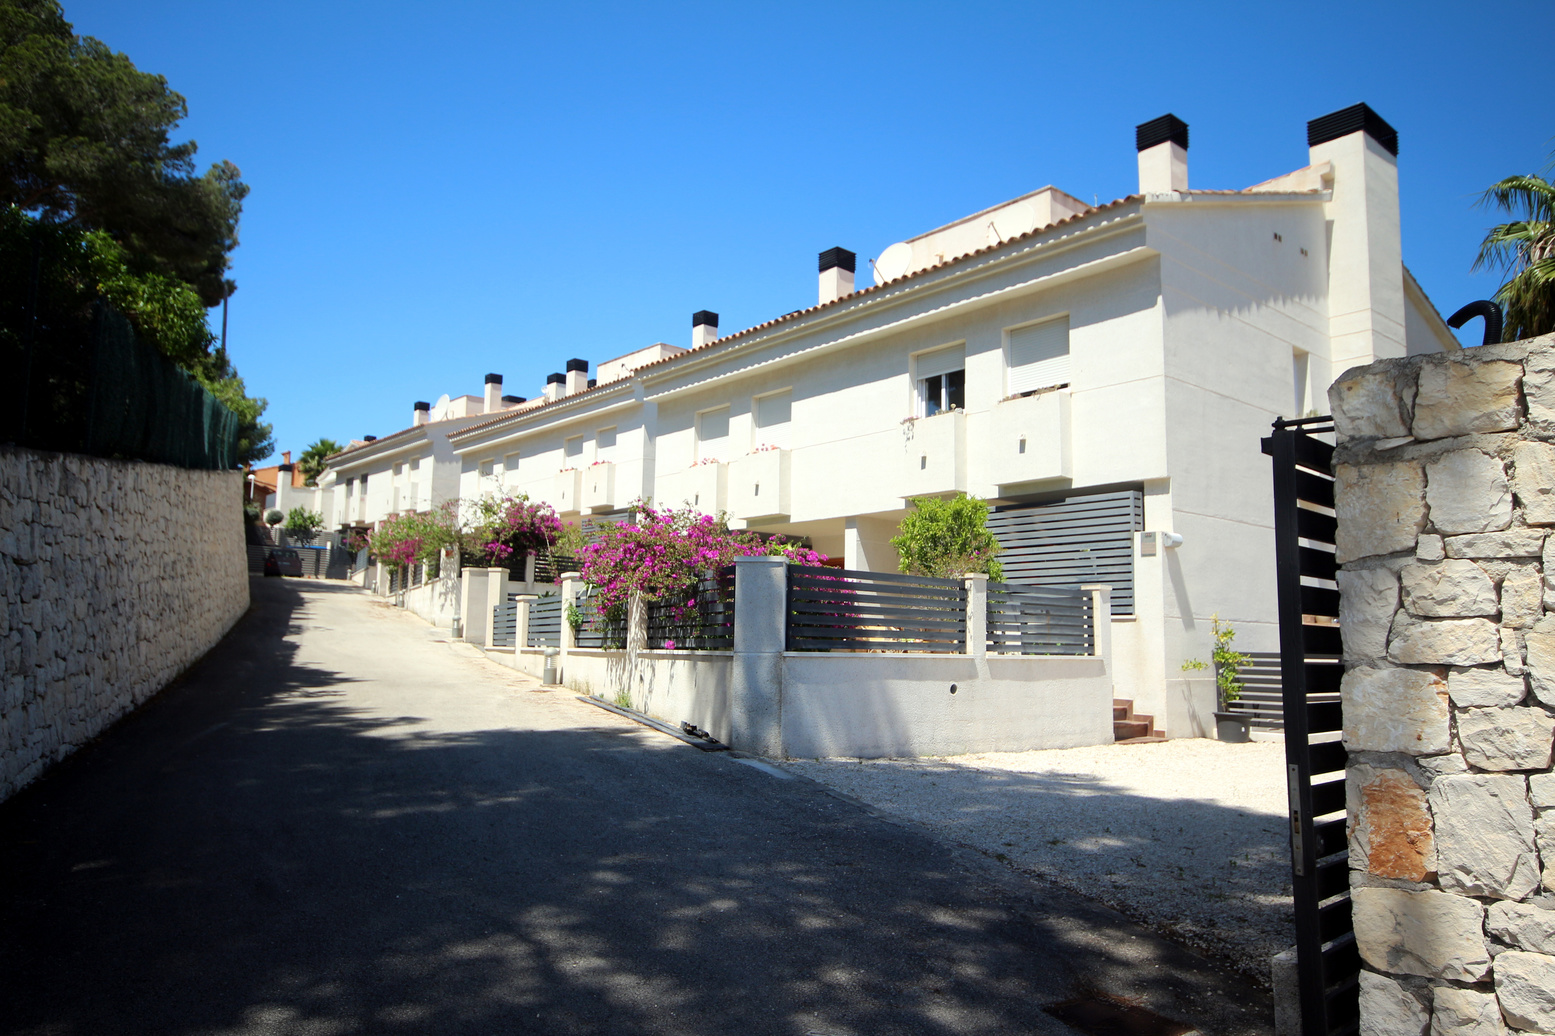 A SEMI DETACHED FOUR BEDROOM VILLA ON A GATED COMMUNITY